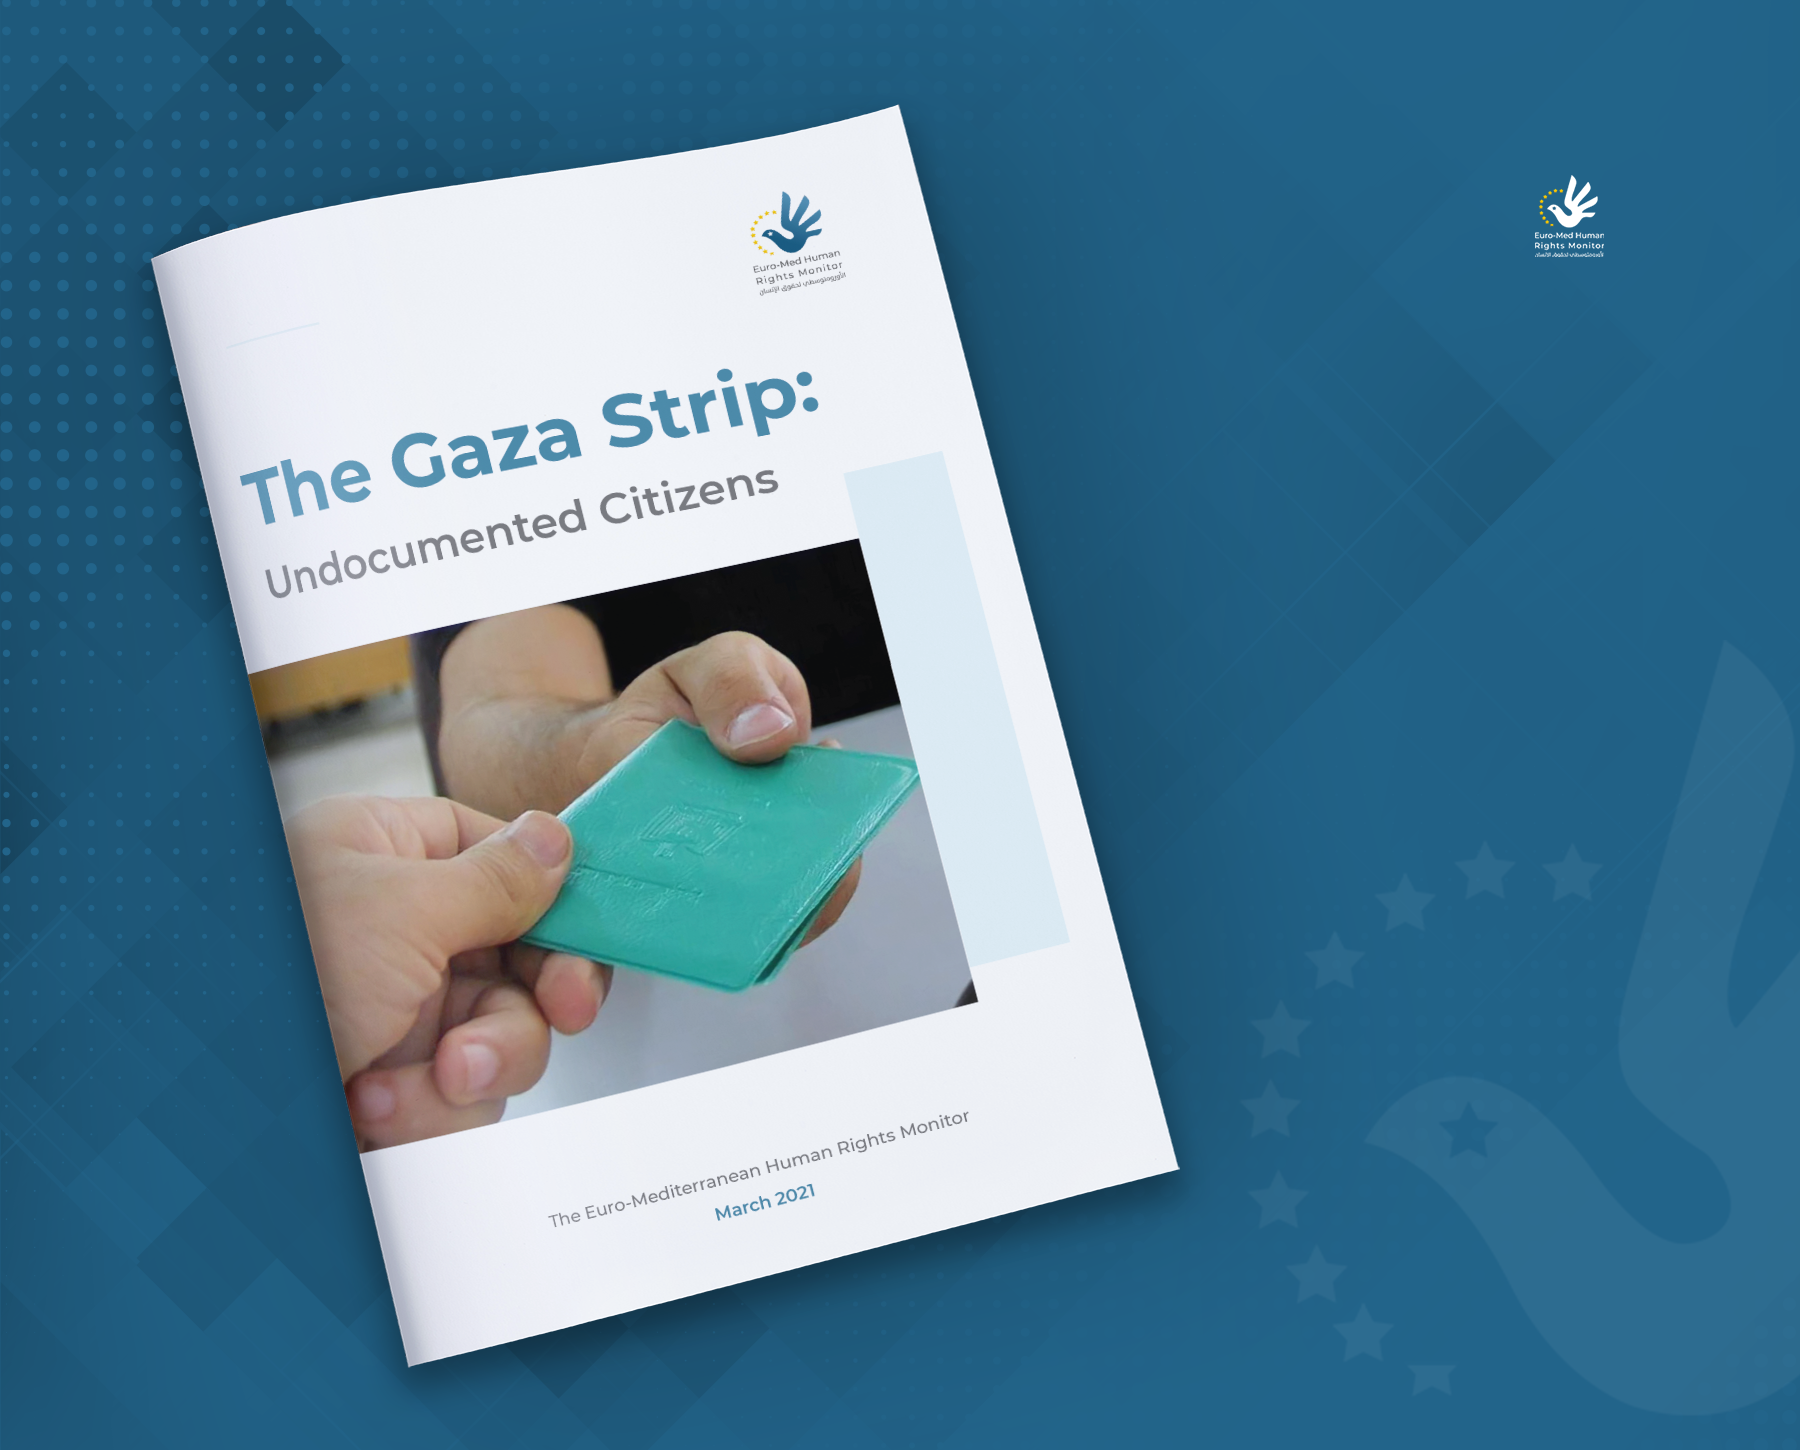 The Gaza Strip: Undocumented Citizens